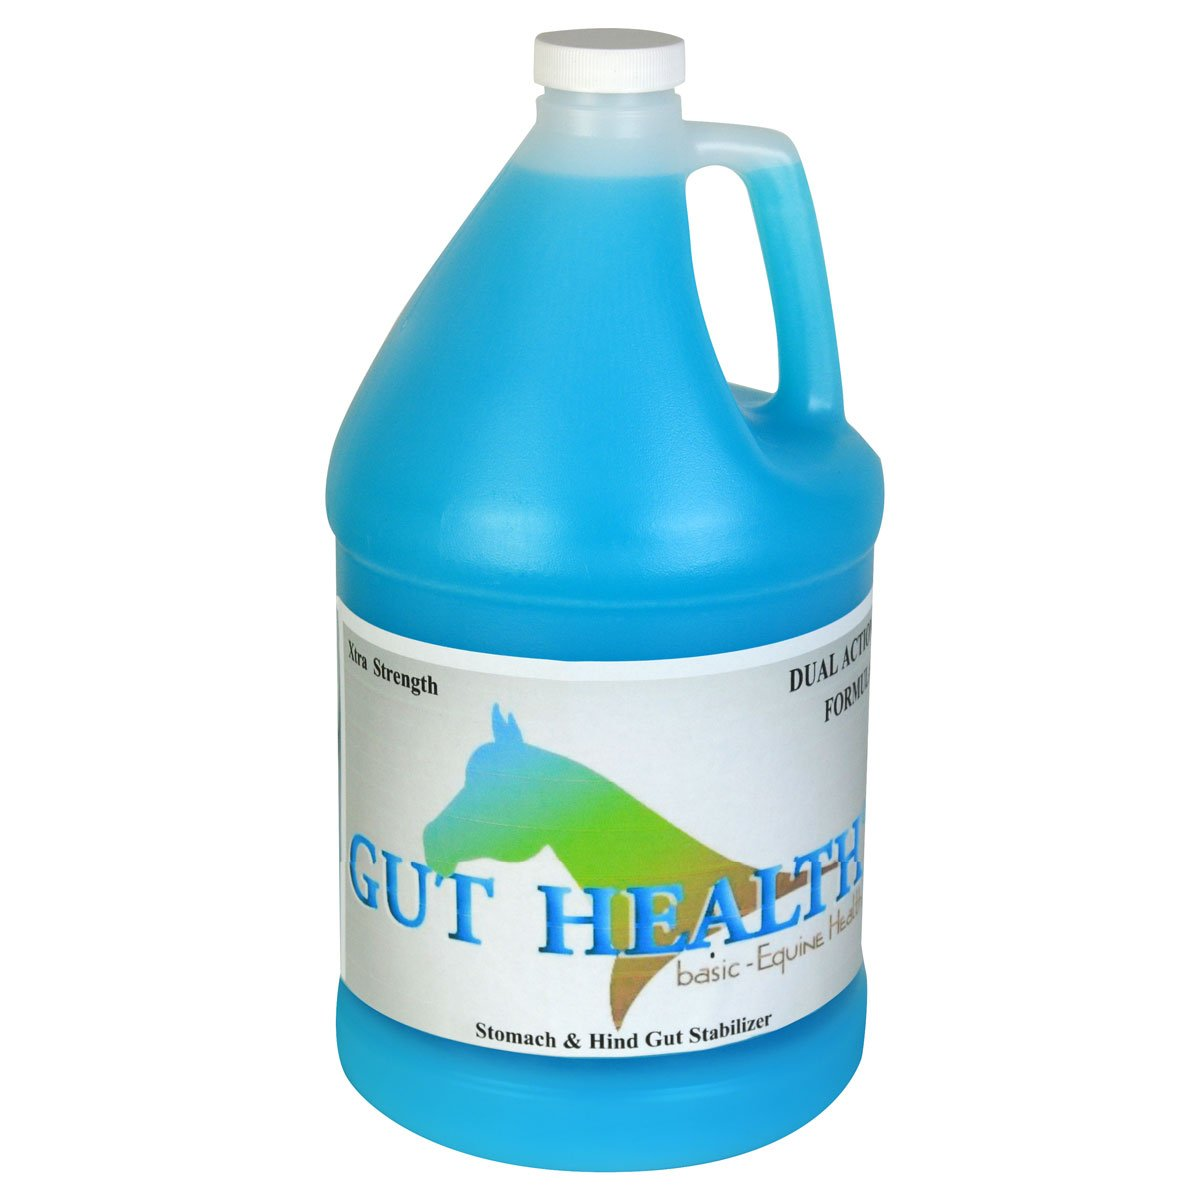 Gut Health Horse Ulcer Supplement - Original Top Dress (1 Gallon) - Ulcer Aid for Horses That Promotes Weight Gain, Improved Mood, Coat, and Hoof Growth